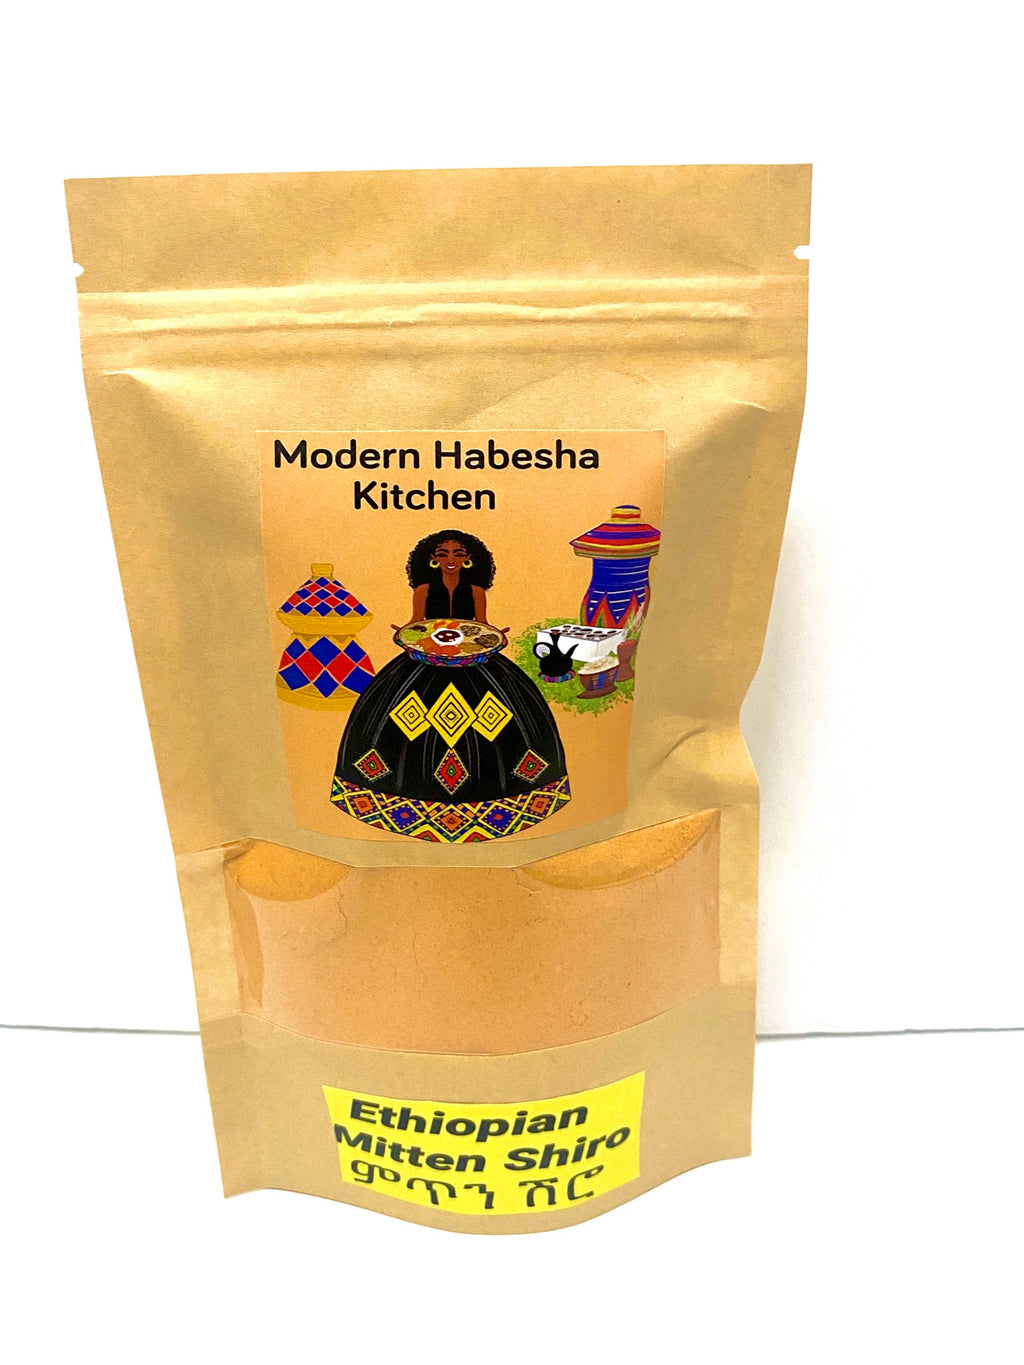 Authentic Ethiopian Mitten Shiro